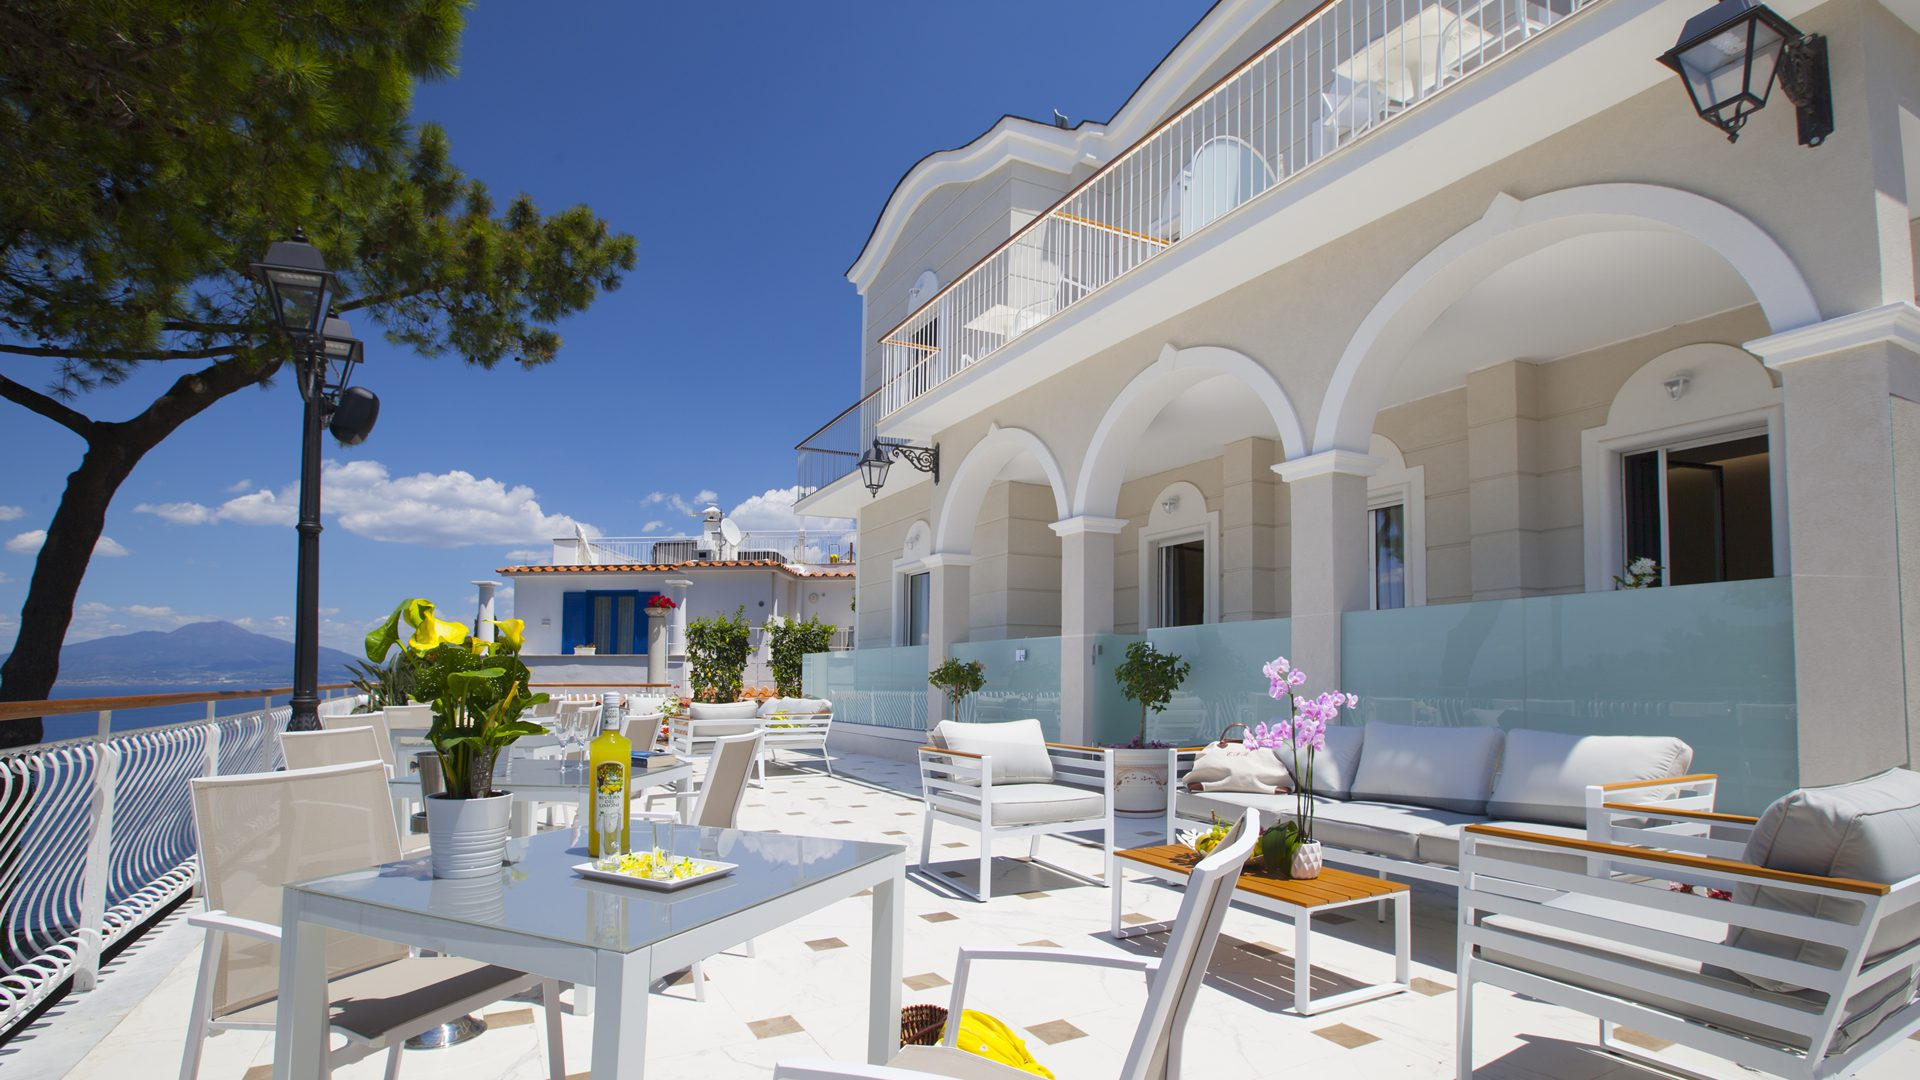 Sorrento Dream Resort – Bed and breakfast and spa in Sorrento Coast